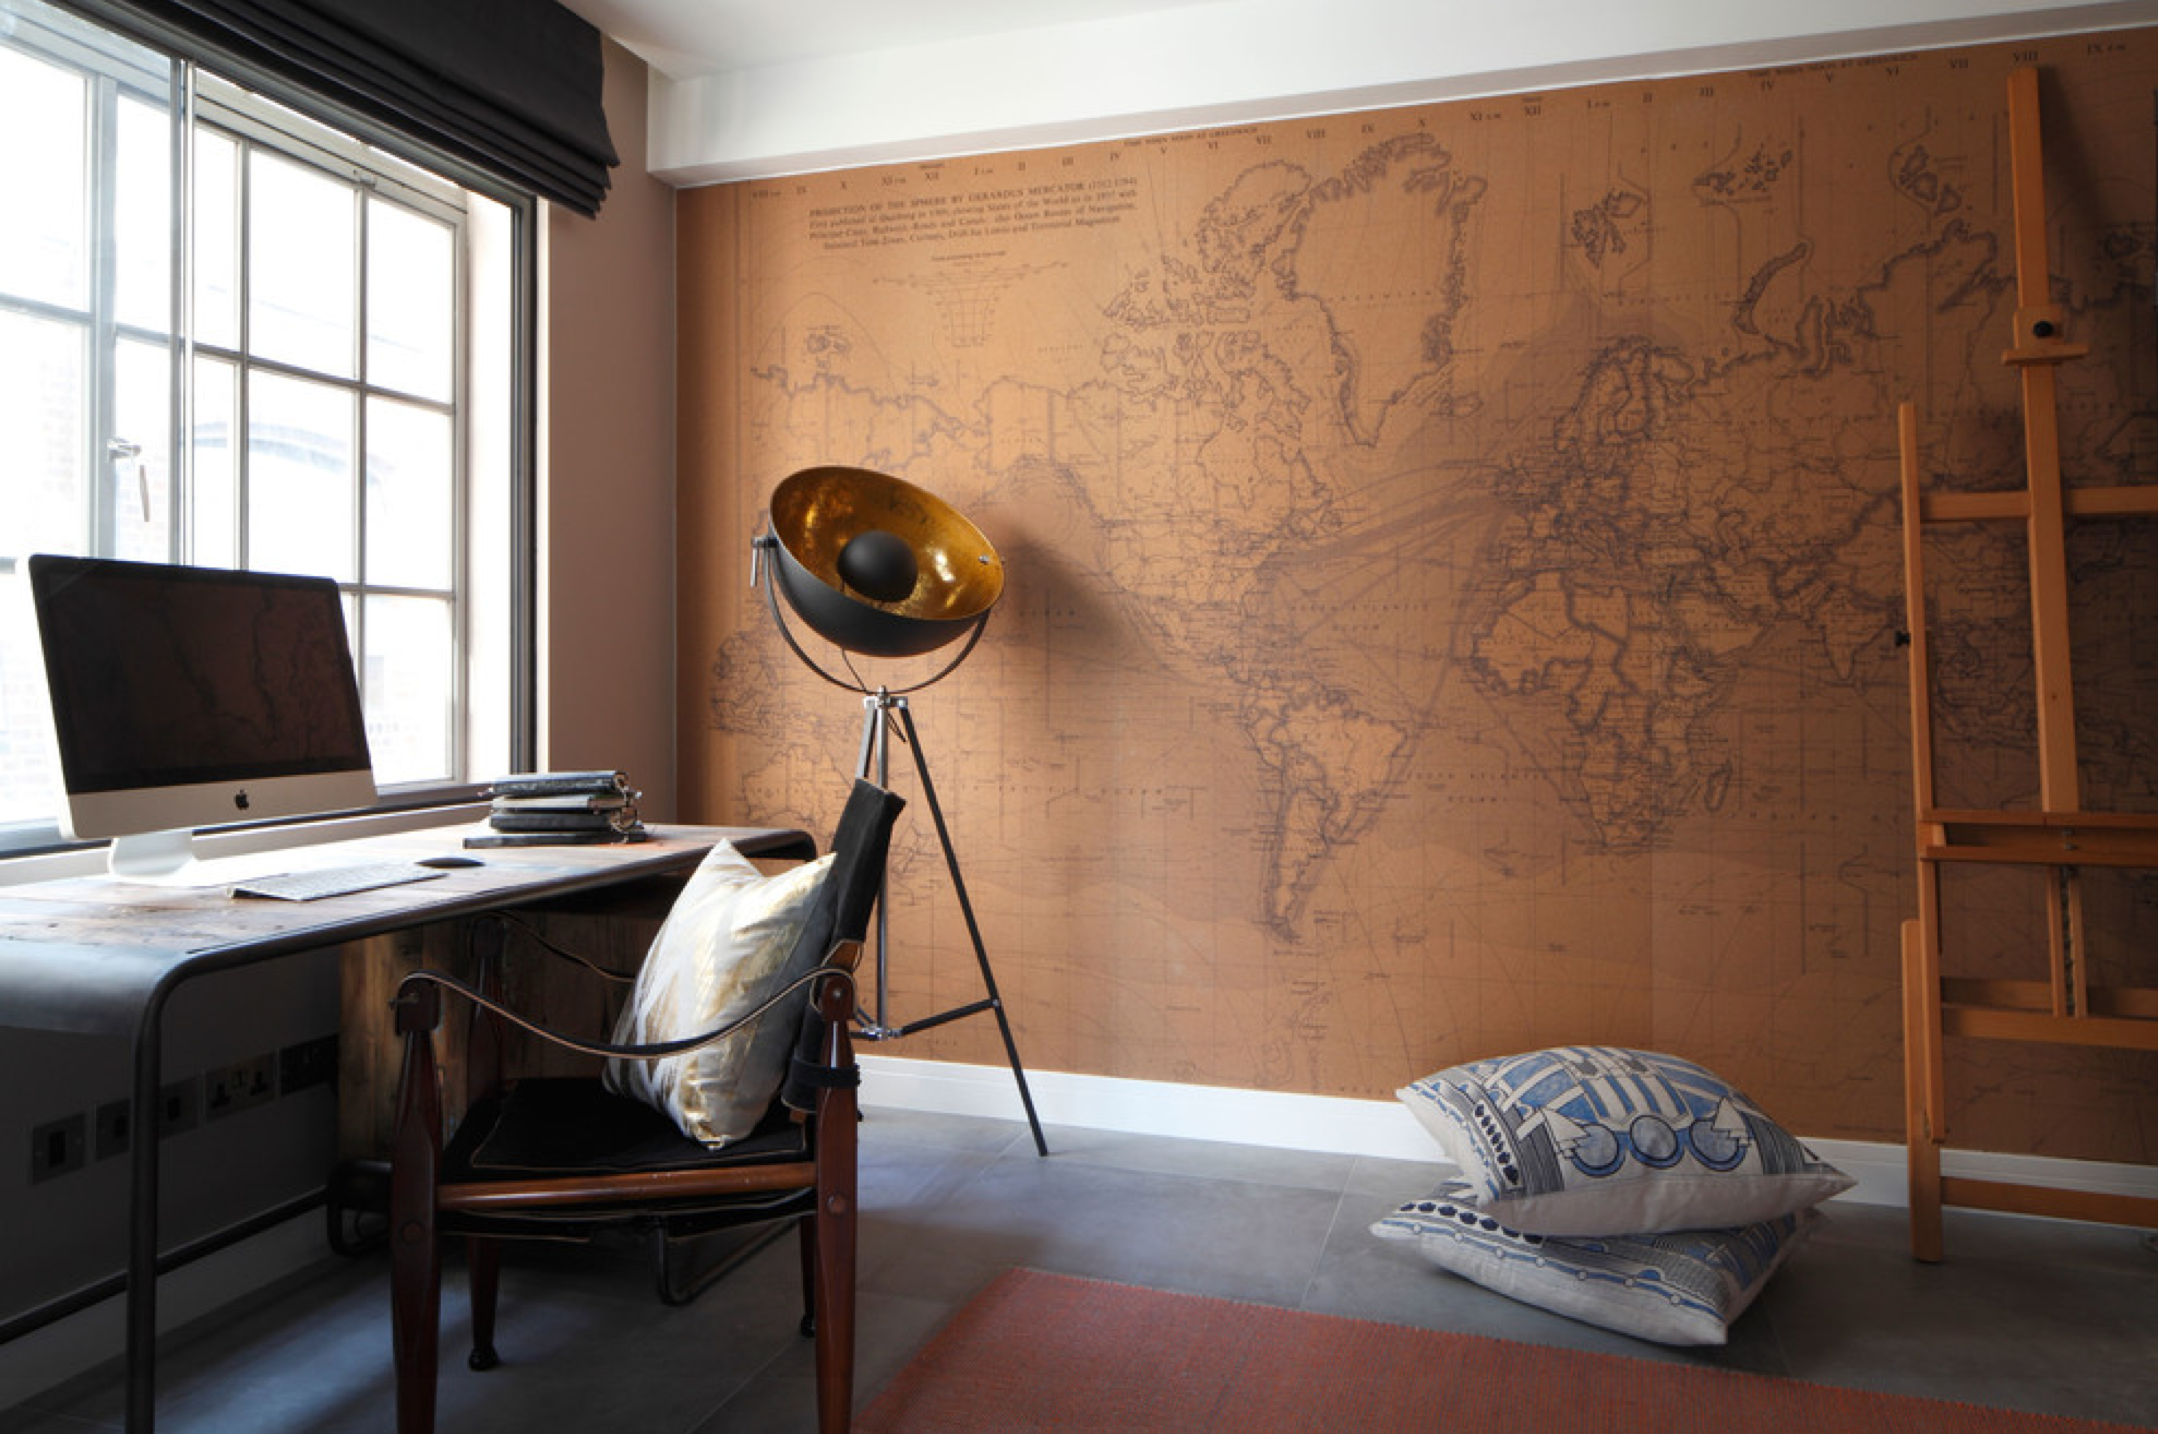 World map wallpaper sepia office desk favorite places spaces world map wallpaper sepia office desk gumiabroncs Image collections